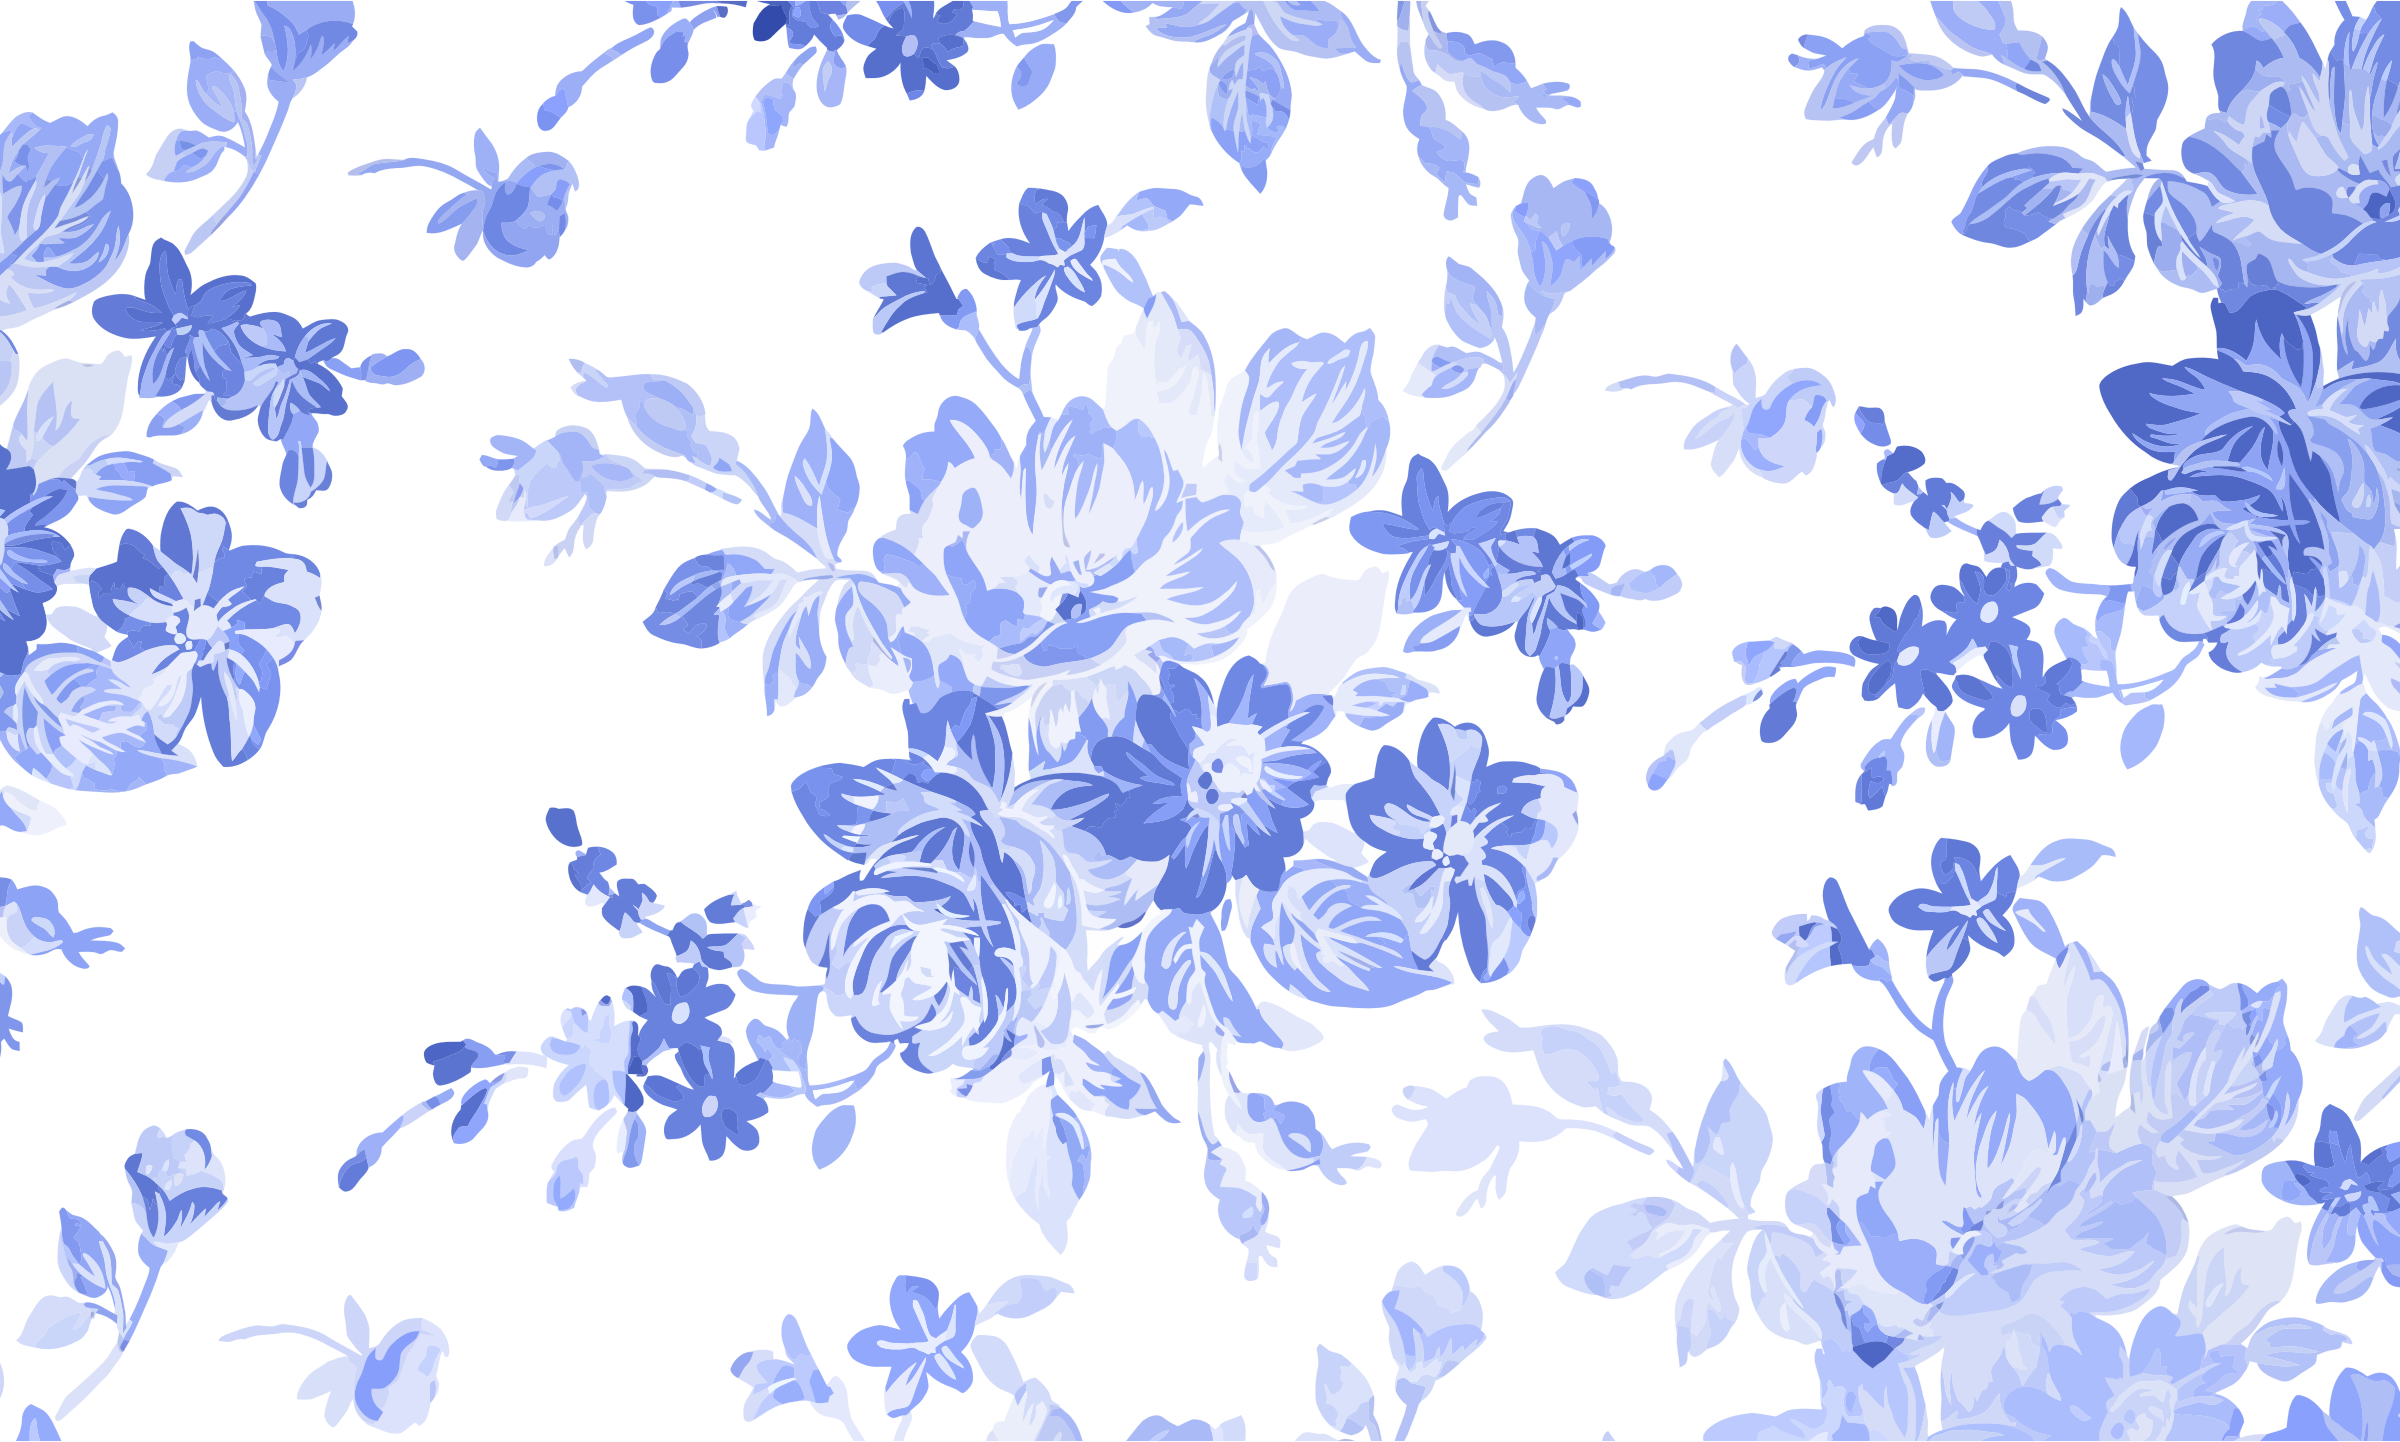 Flowers background png. Blue floral watercolor icons